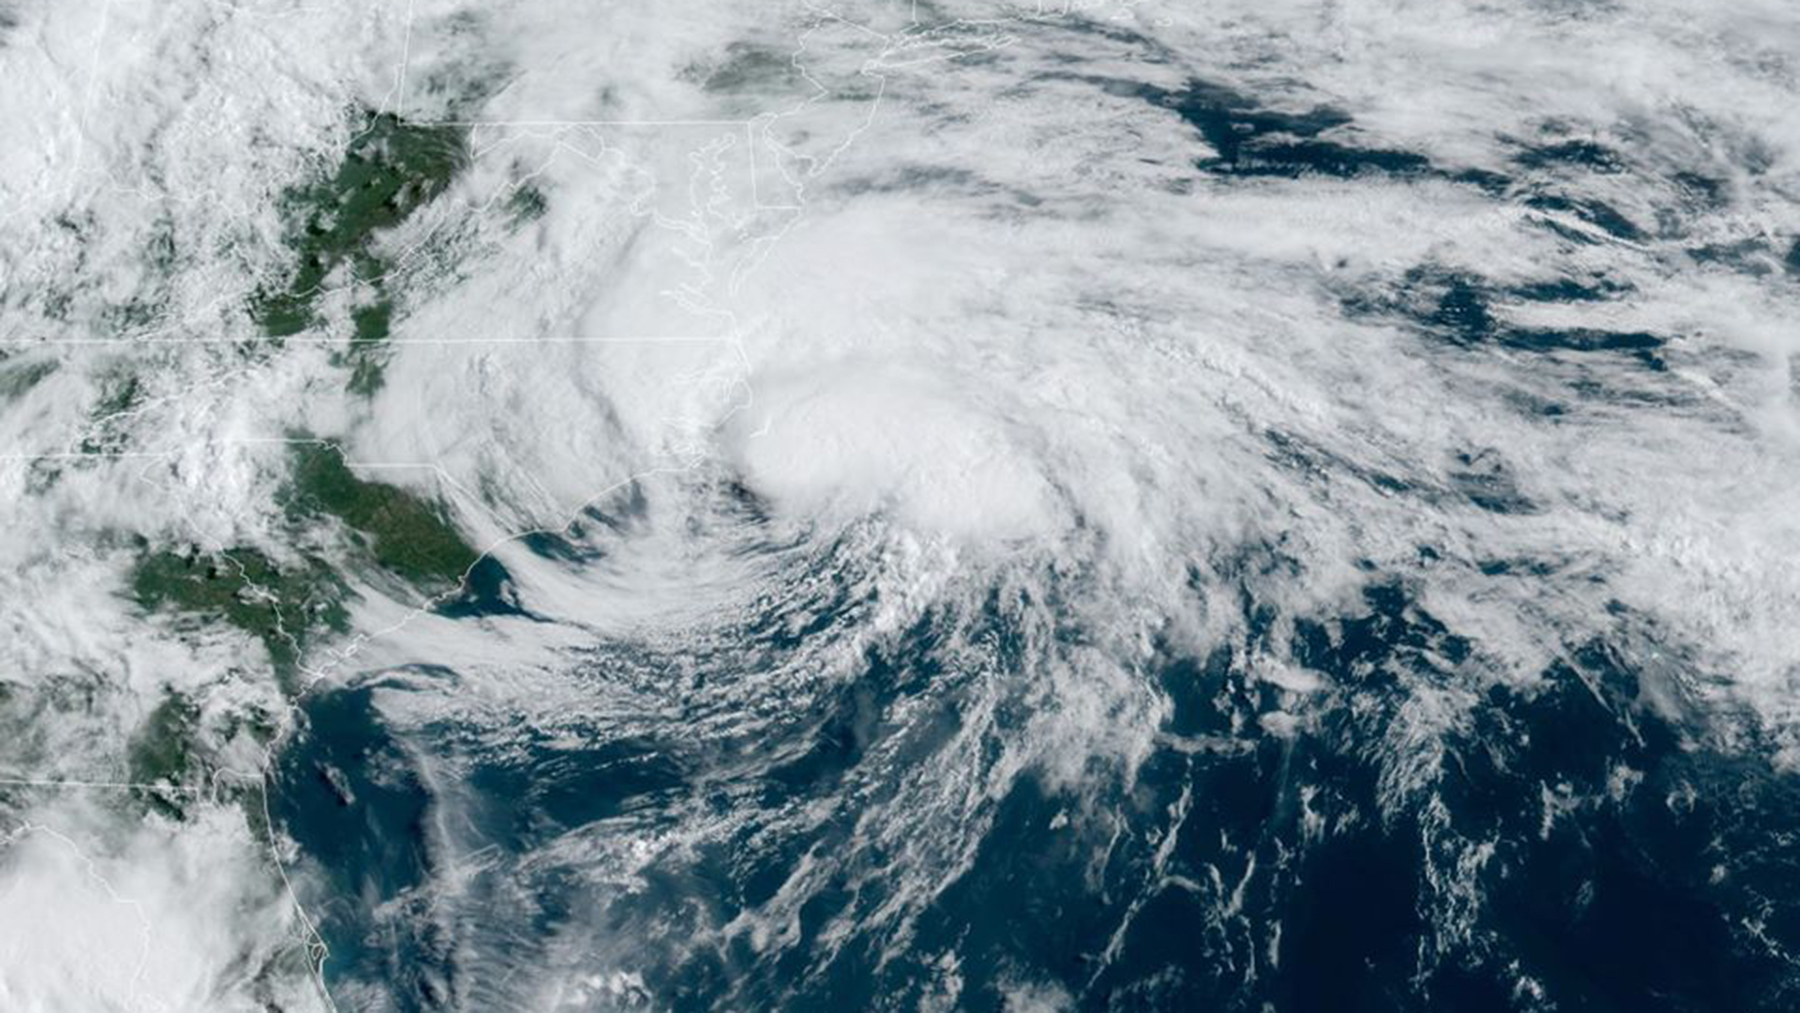 Tropical Storm Arthur in an image released on May 18. (Image courtesy of NOAA)